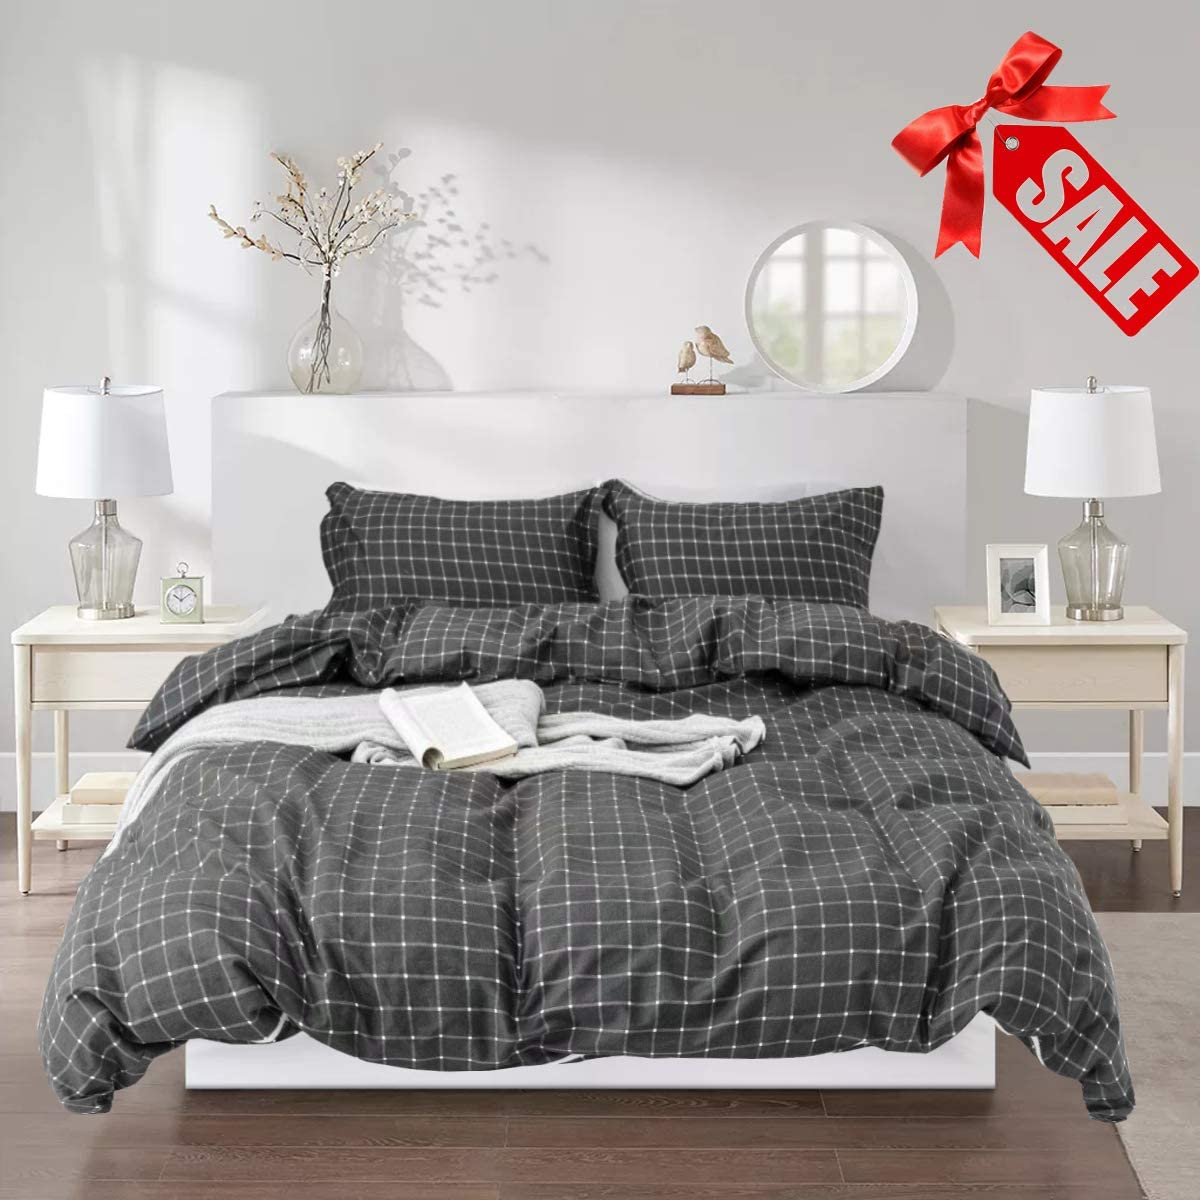 Wellboo Plaid Duvet Cover Set Gray Mini Grid Bedding Sets Twin Grey and White Checkered Cotton Comforter Covers Teens Boys Men Bedding Sets Gingham Square Geometric Reversible Duvet Cover No Comforter